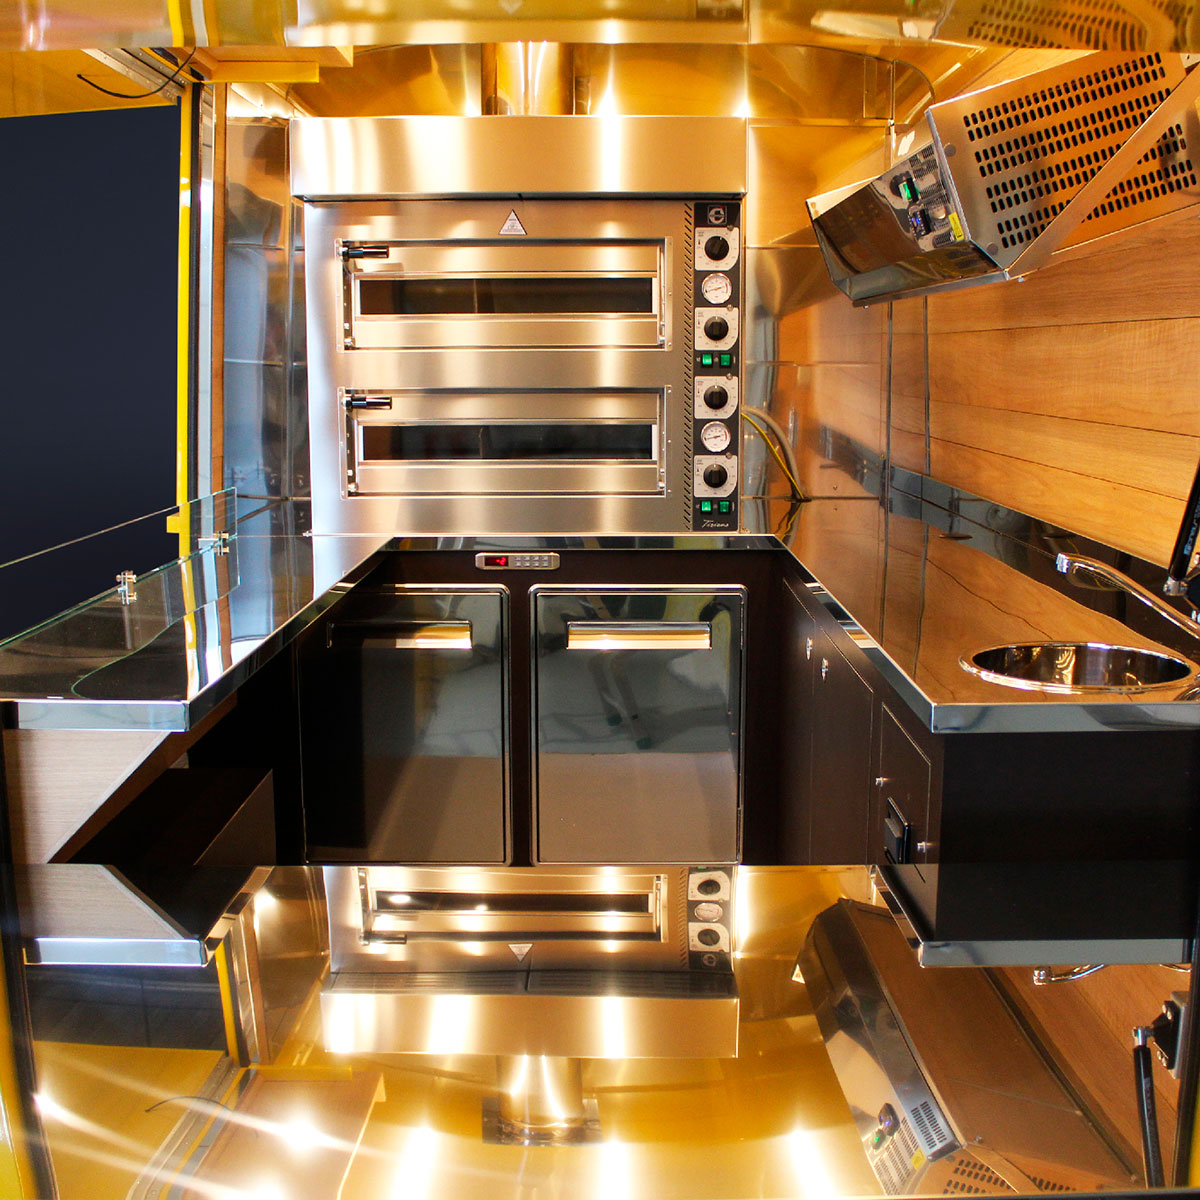 mobile food truck designed mit professional kitchen and two ovens